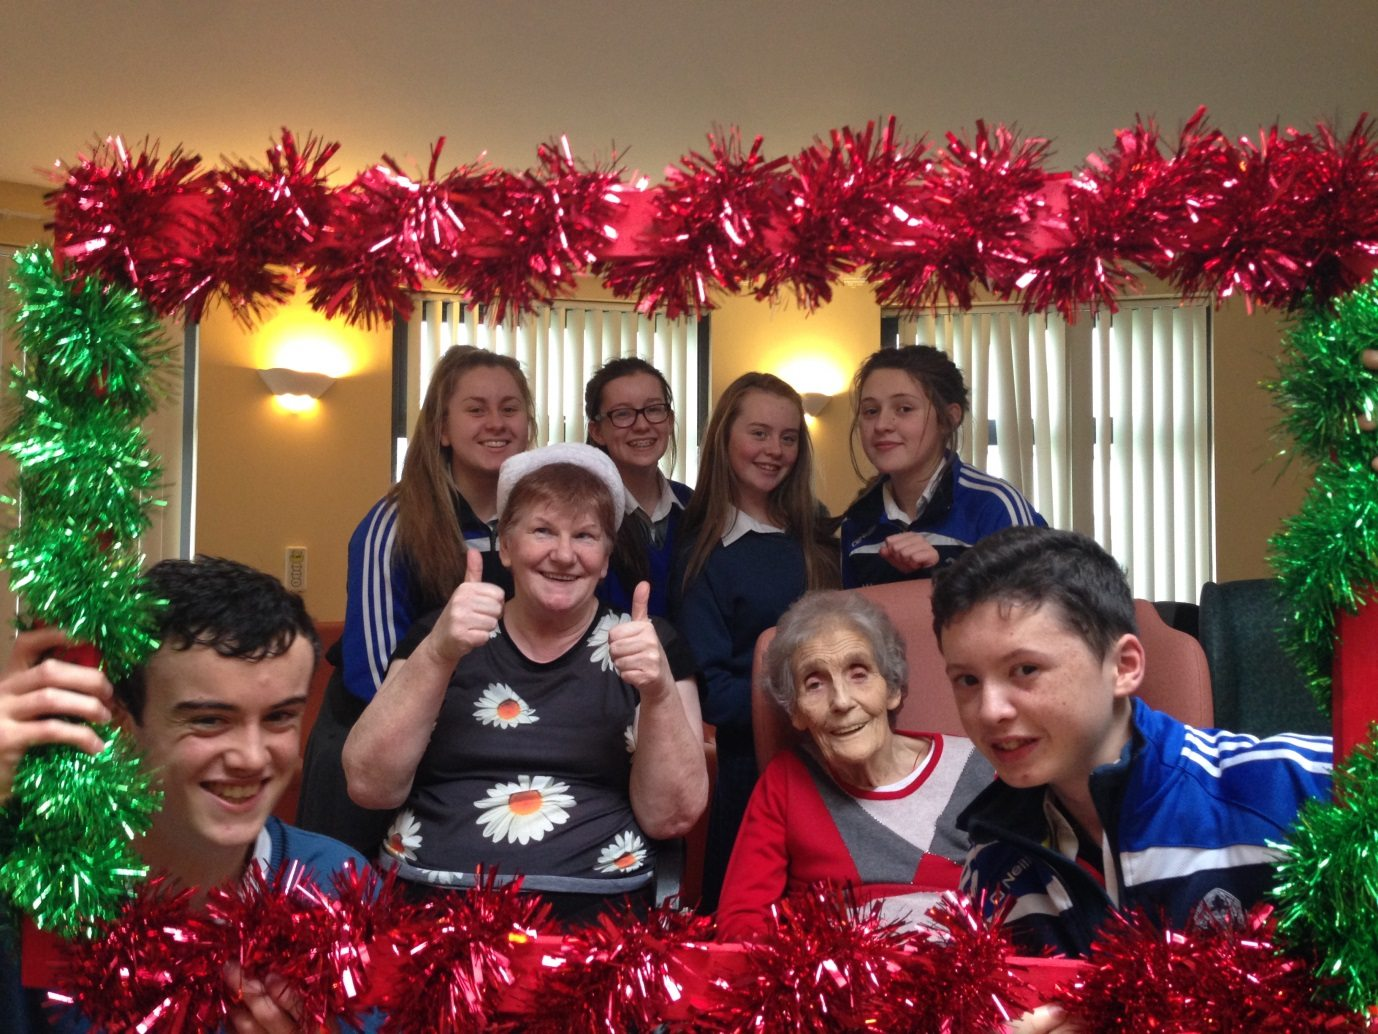 Desmond College Students Singing Christmas Carols for the Residents of St. Itas